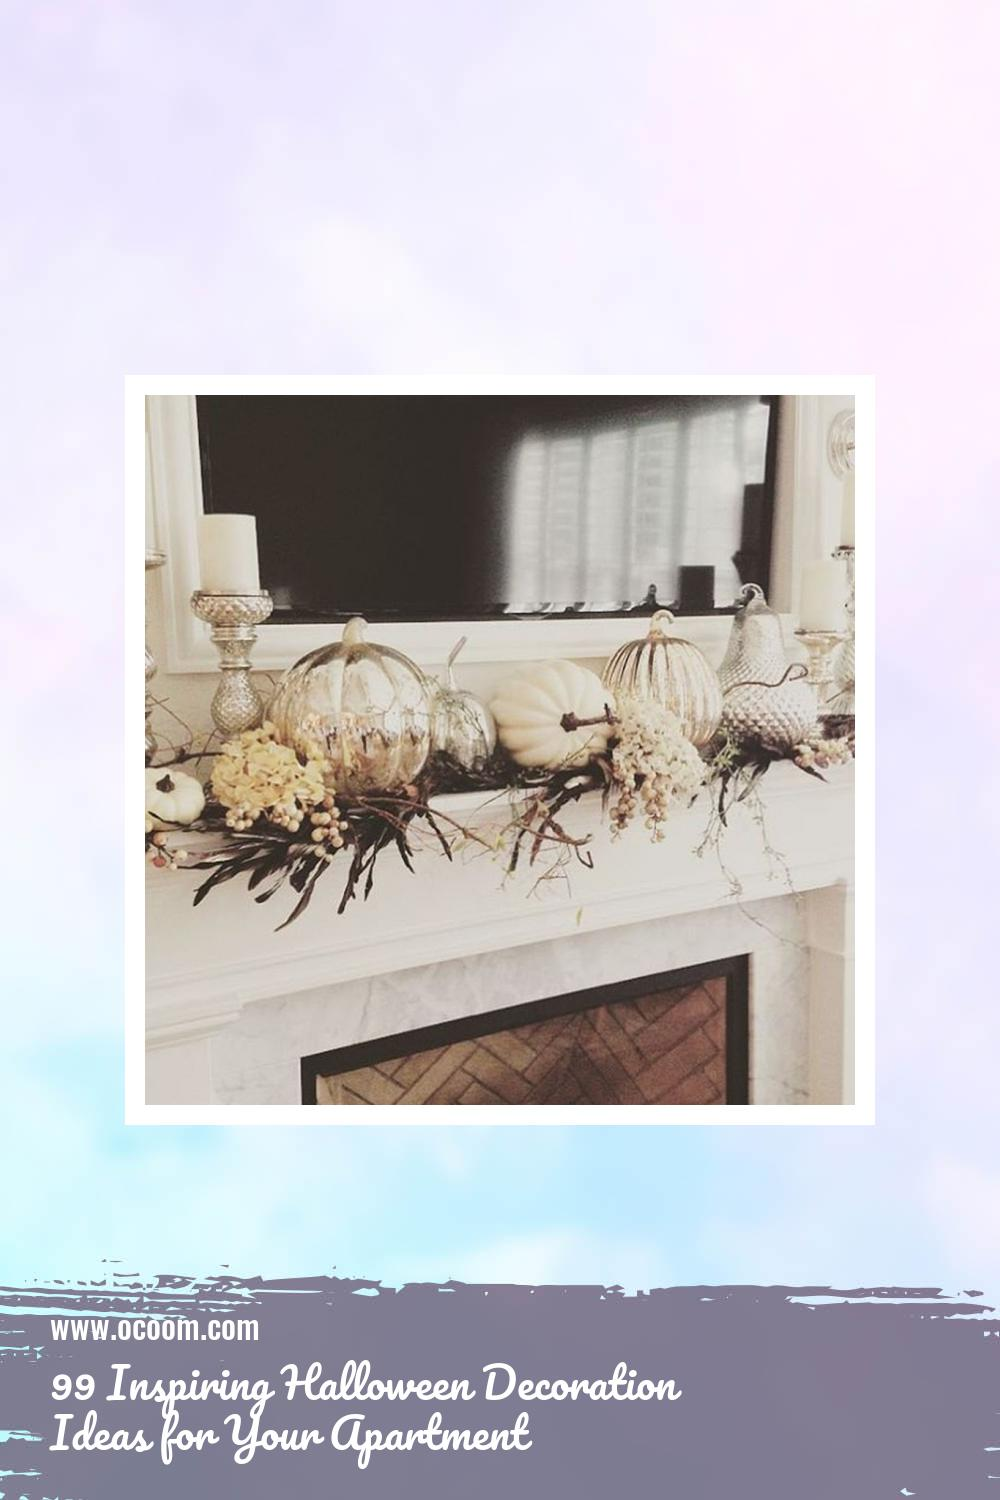 99 Inspiring Halloween Decoration Ideas for Your Apartment 13